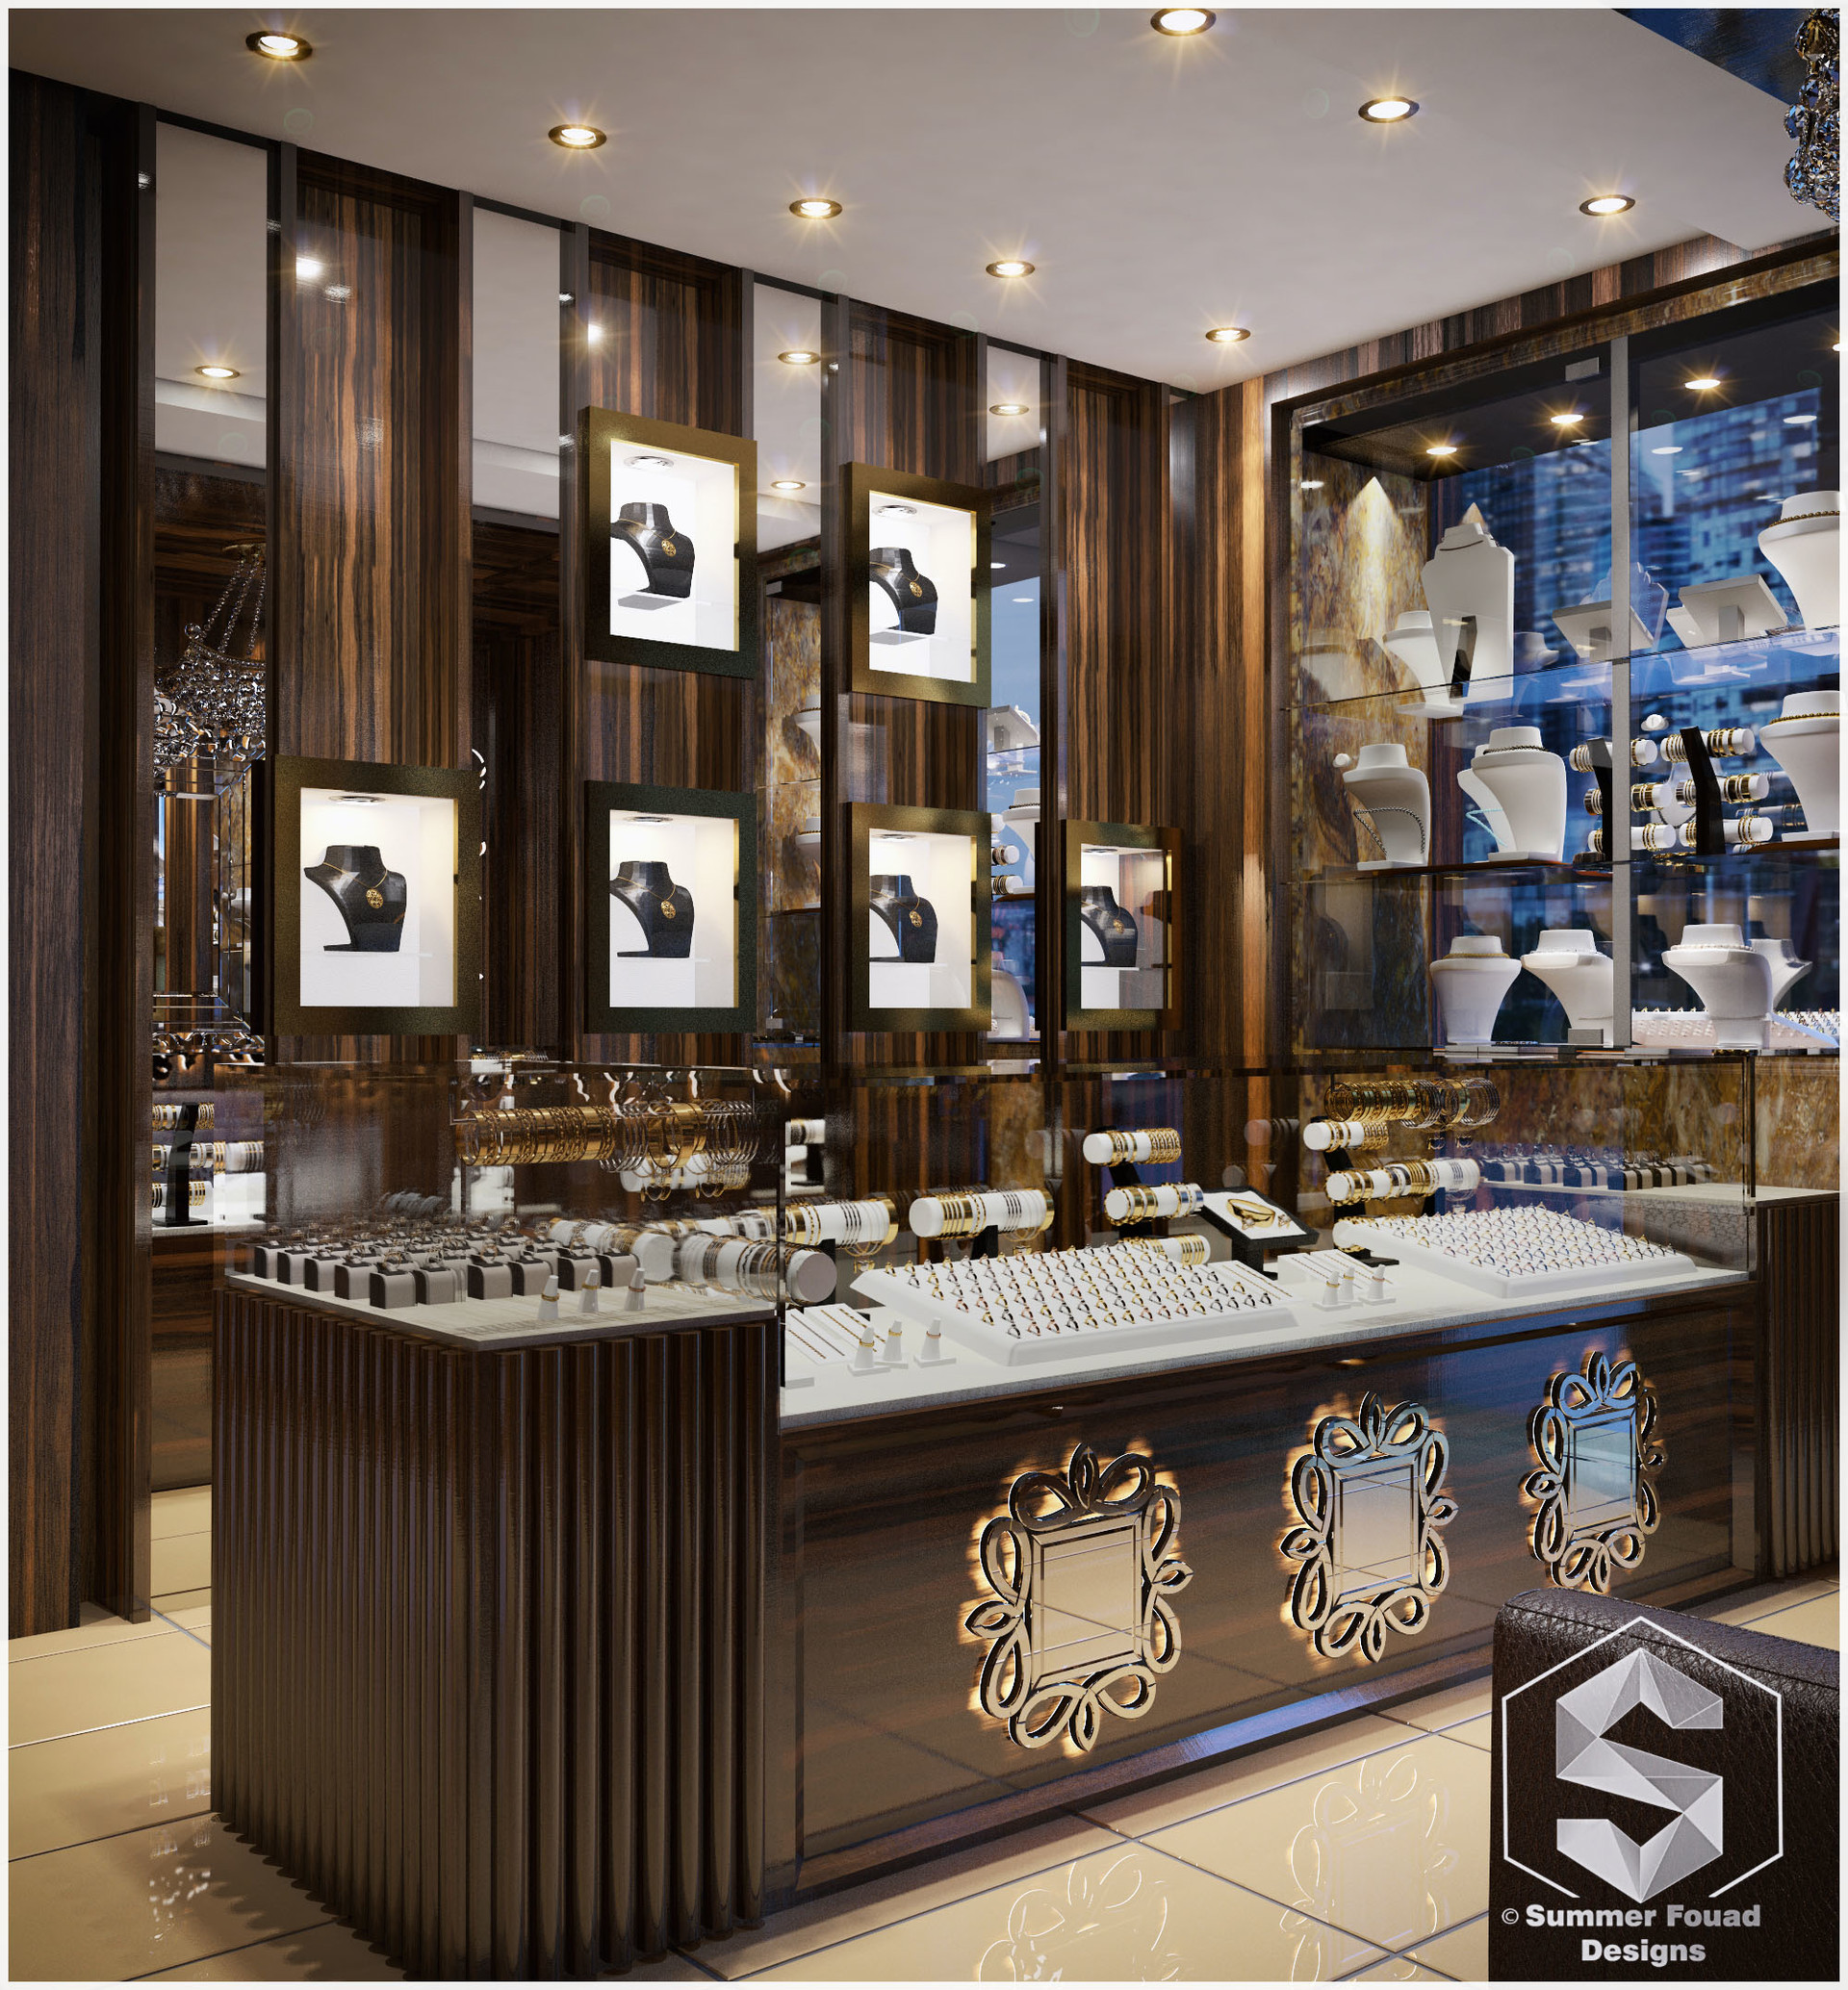 Summer fouad jewelry store